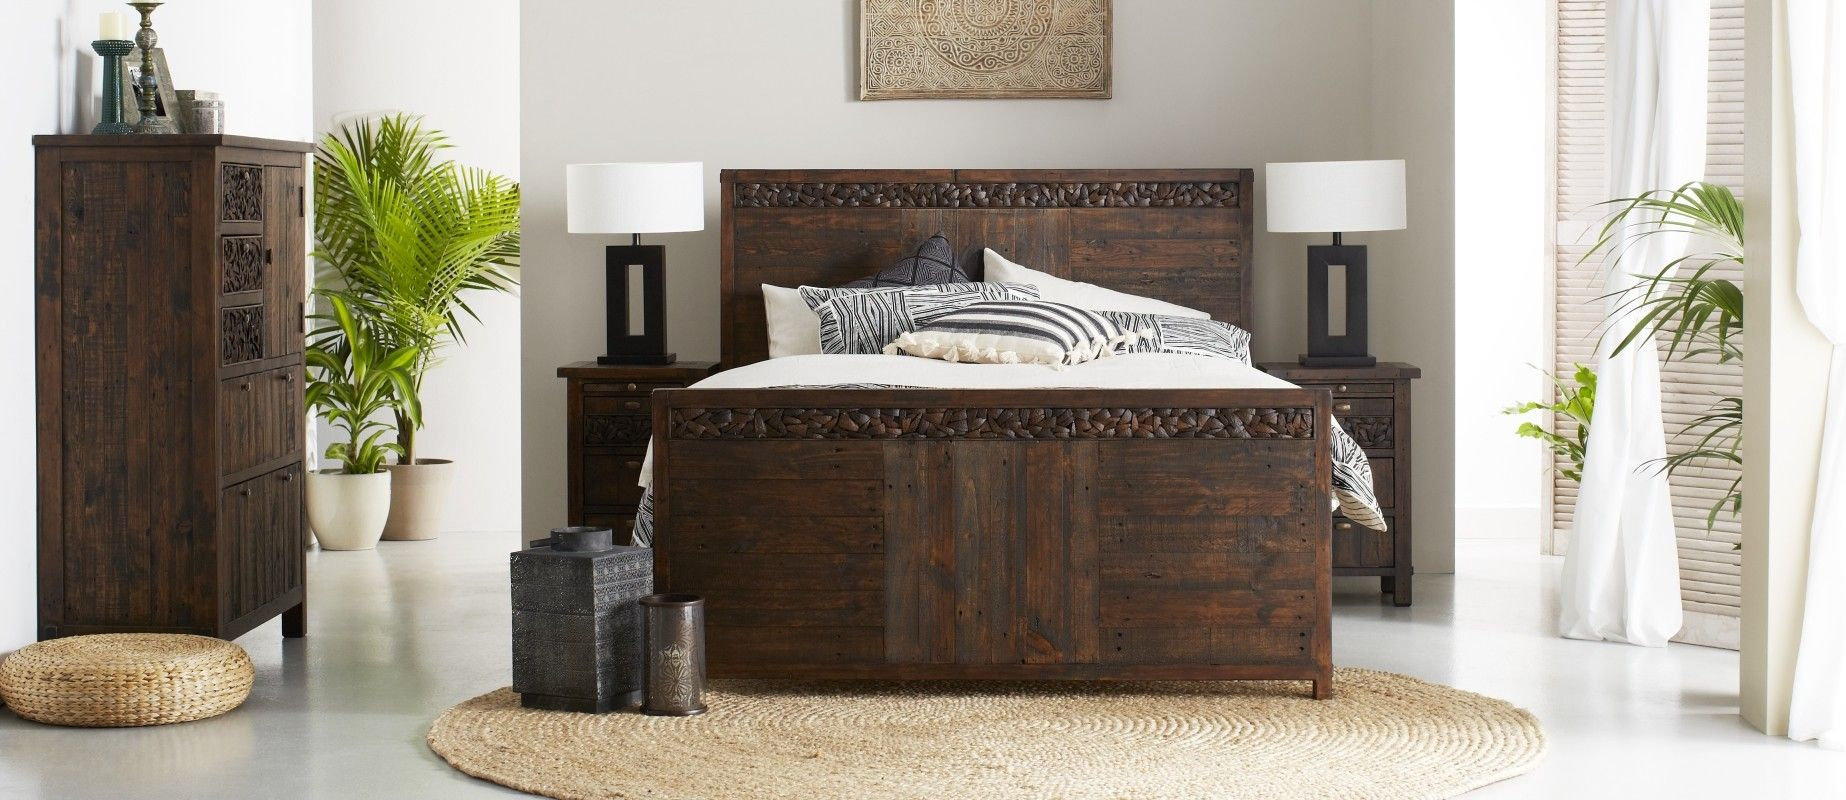 Snooze Bedroom Suites Cocobu Bedroom Furniture Certified 100 Recycled Wood 5 Years